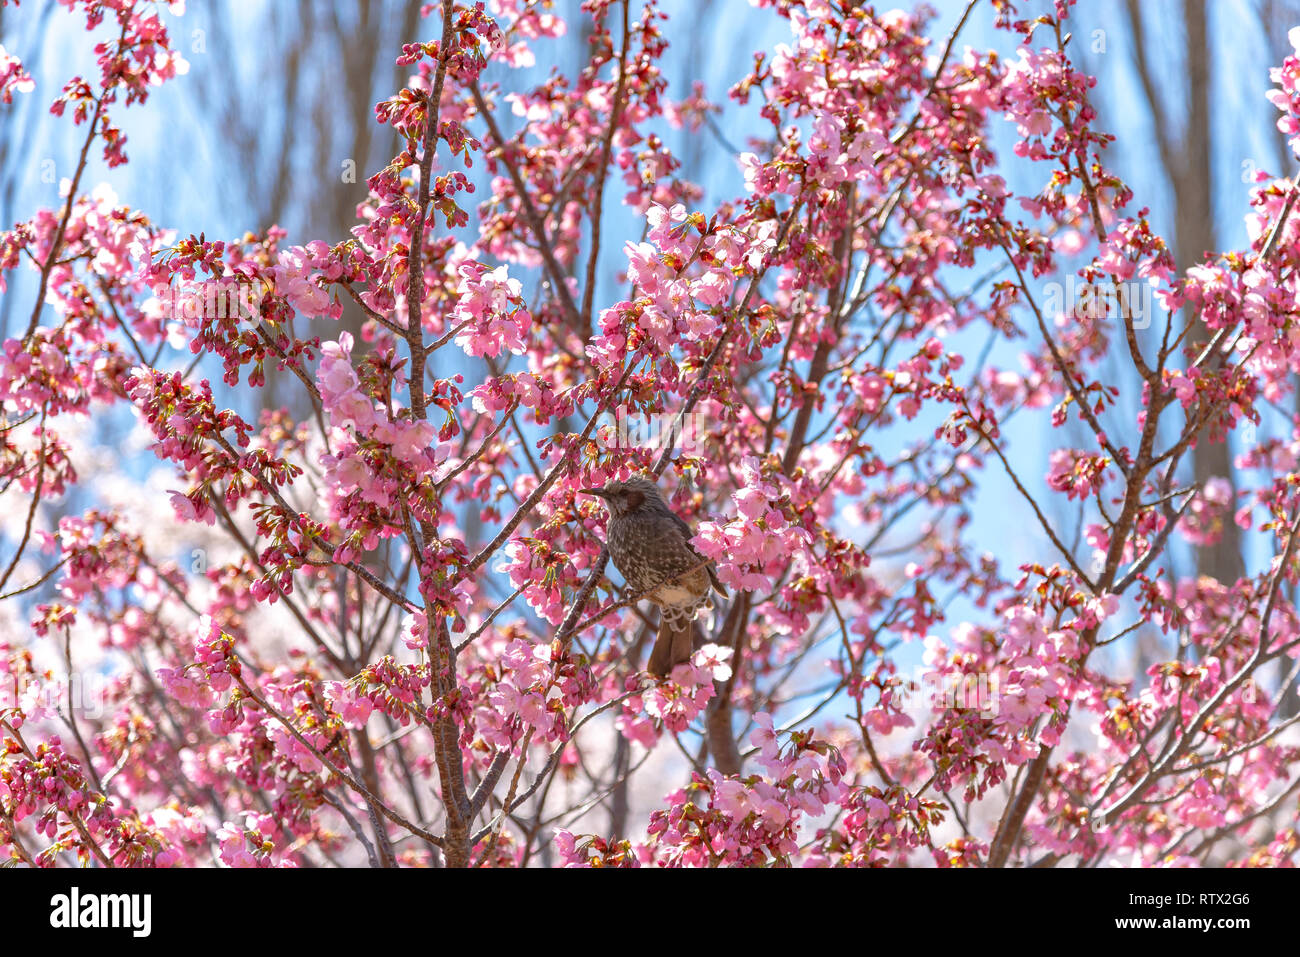 Cherry Blossoms And Bird And Japan Stock Photos & Cherry ... - photo#39